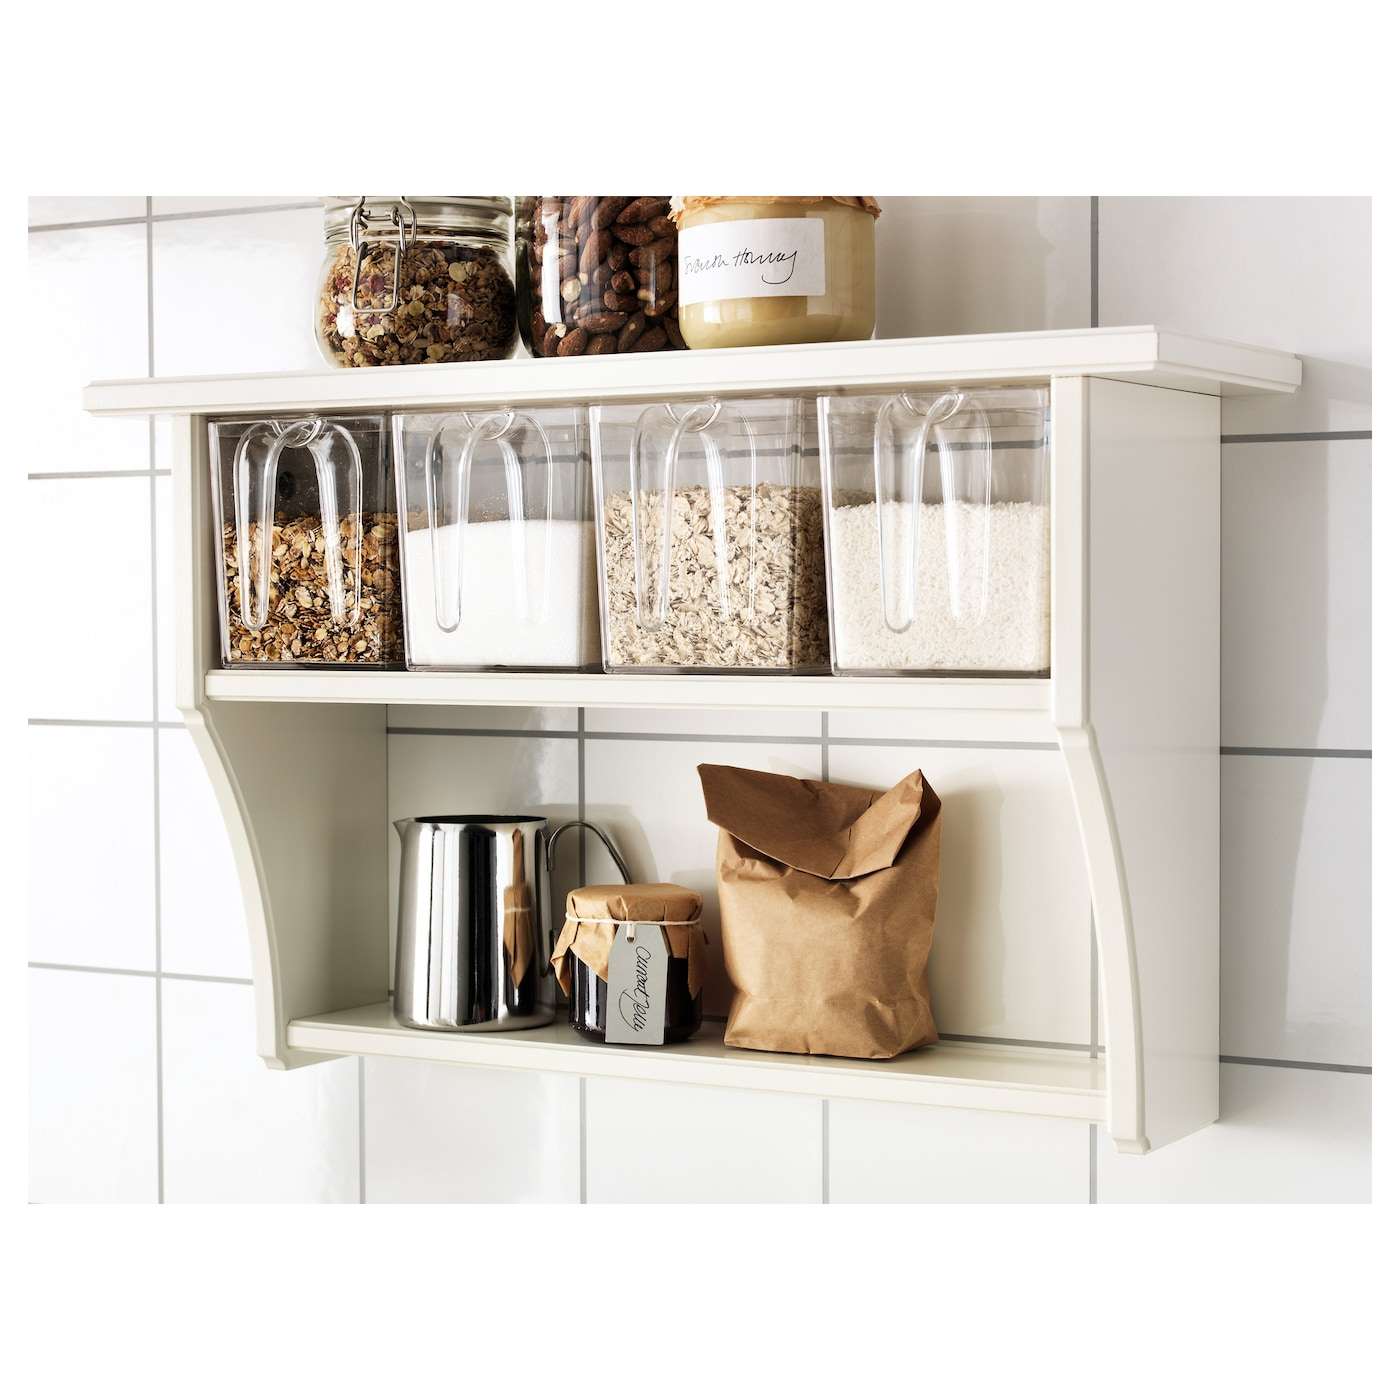 Shelves For Kitchen Wall: STENSTORP Wall Shelf With Drawers White 60x37 Cm